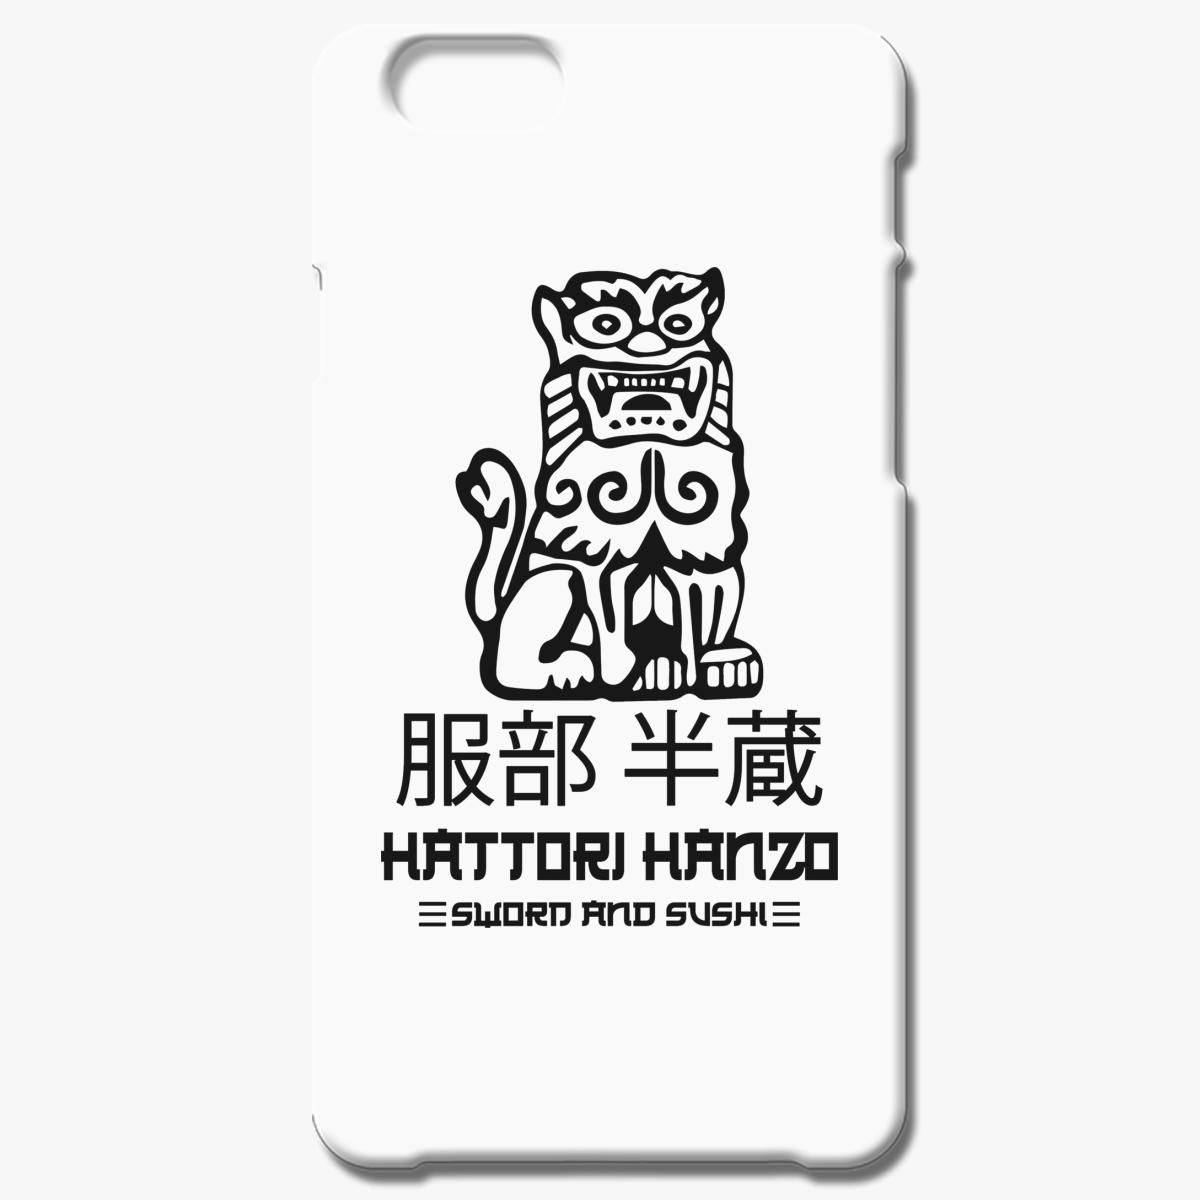 Hattori Hanzo Sword And Sushie Iphone 6 6s Plus Case